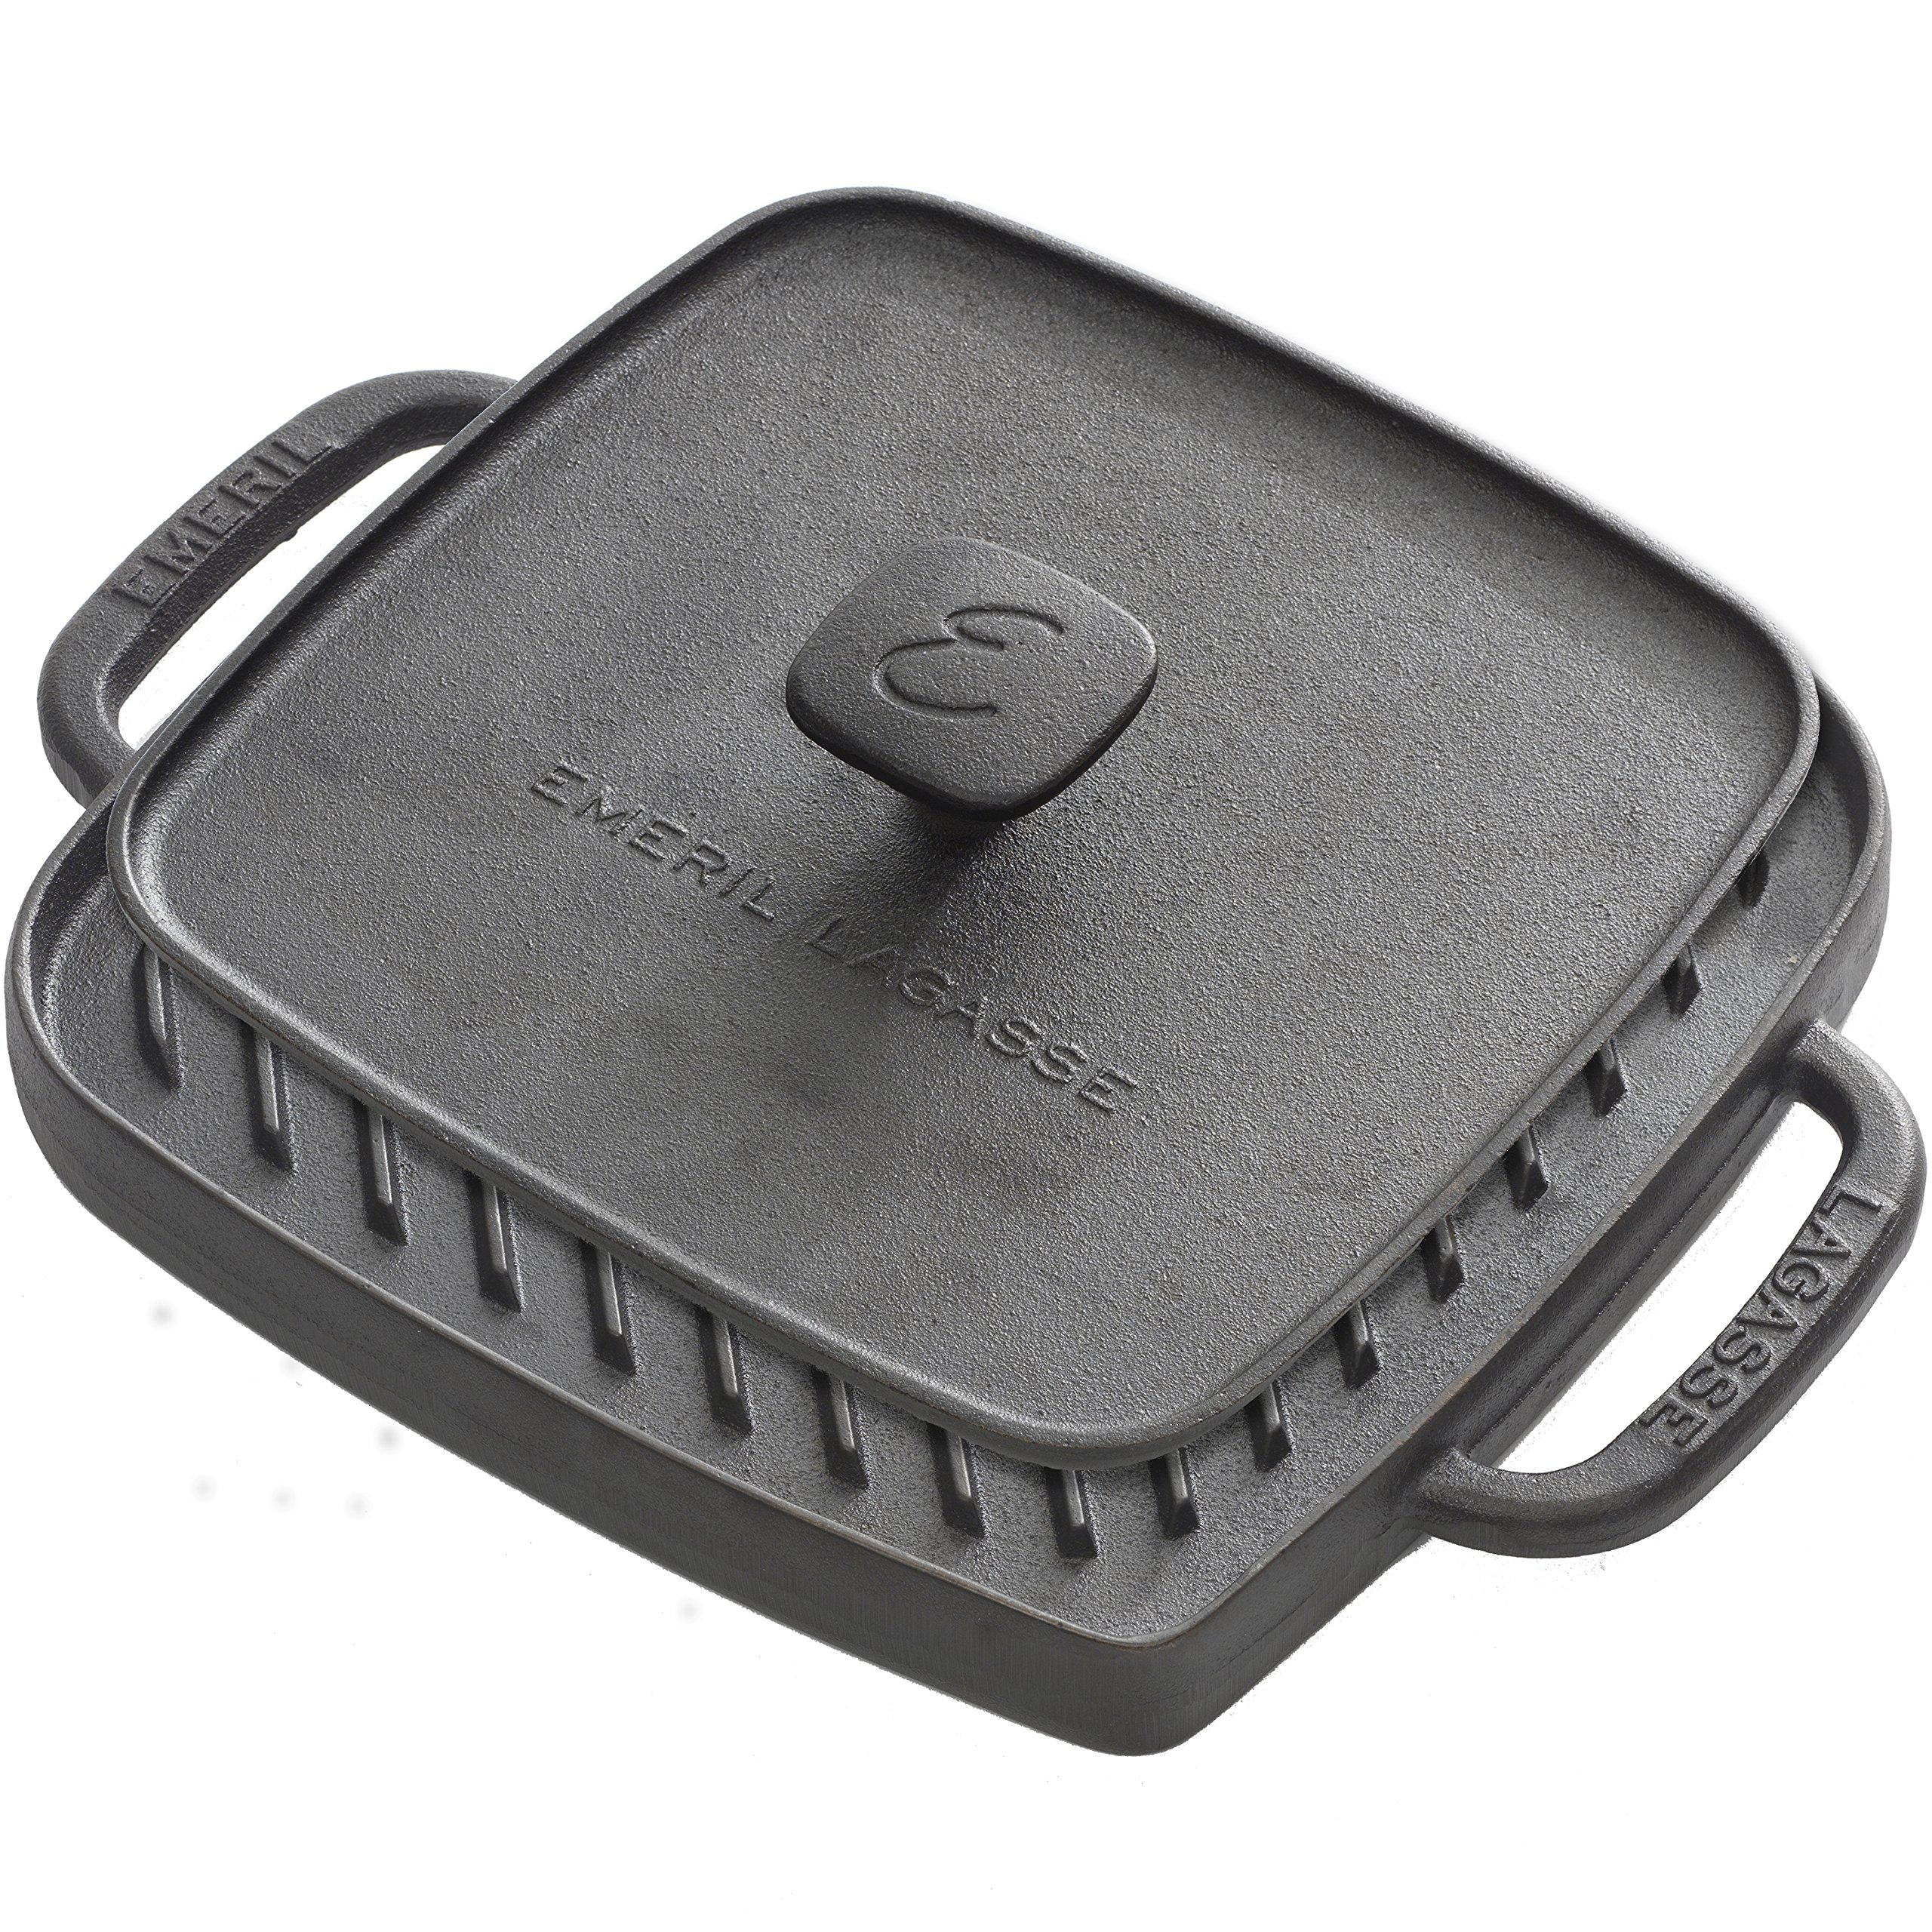 Emeril Lagasse 62990, pre-seasoned cast iron single burner reversible grill griddle with large grill press, black